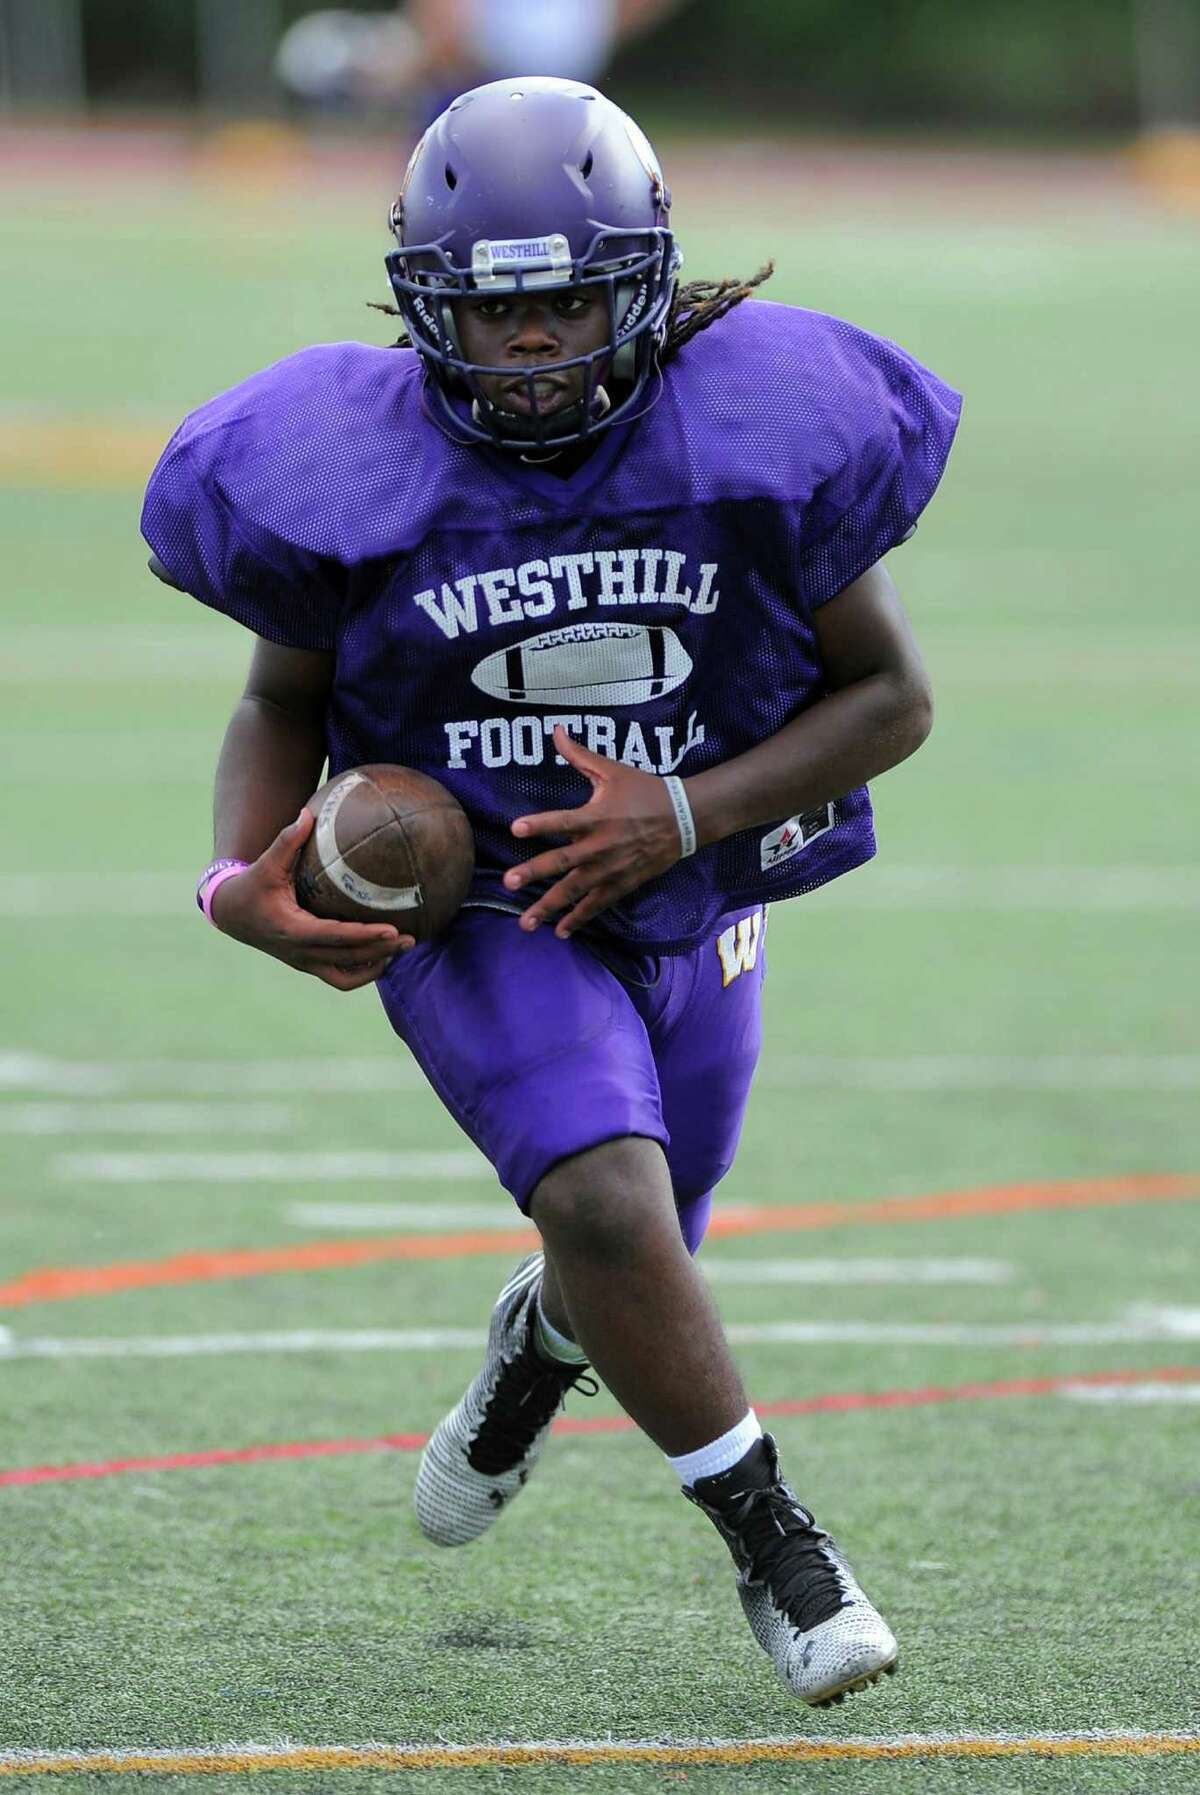 Westhill R.J. Jackson runs the ball back on a punt return drill during a team practice at the school in Stamford on Wednesday, Sept 7, 2016.